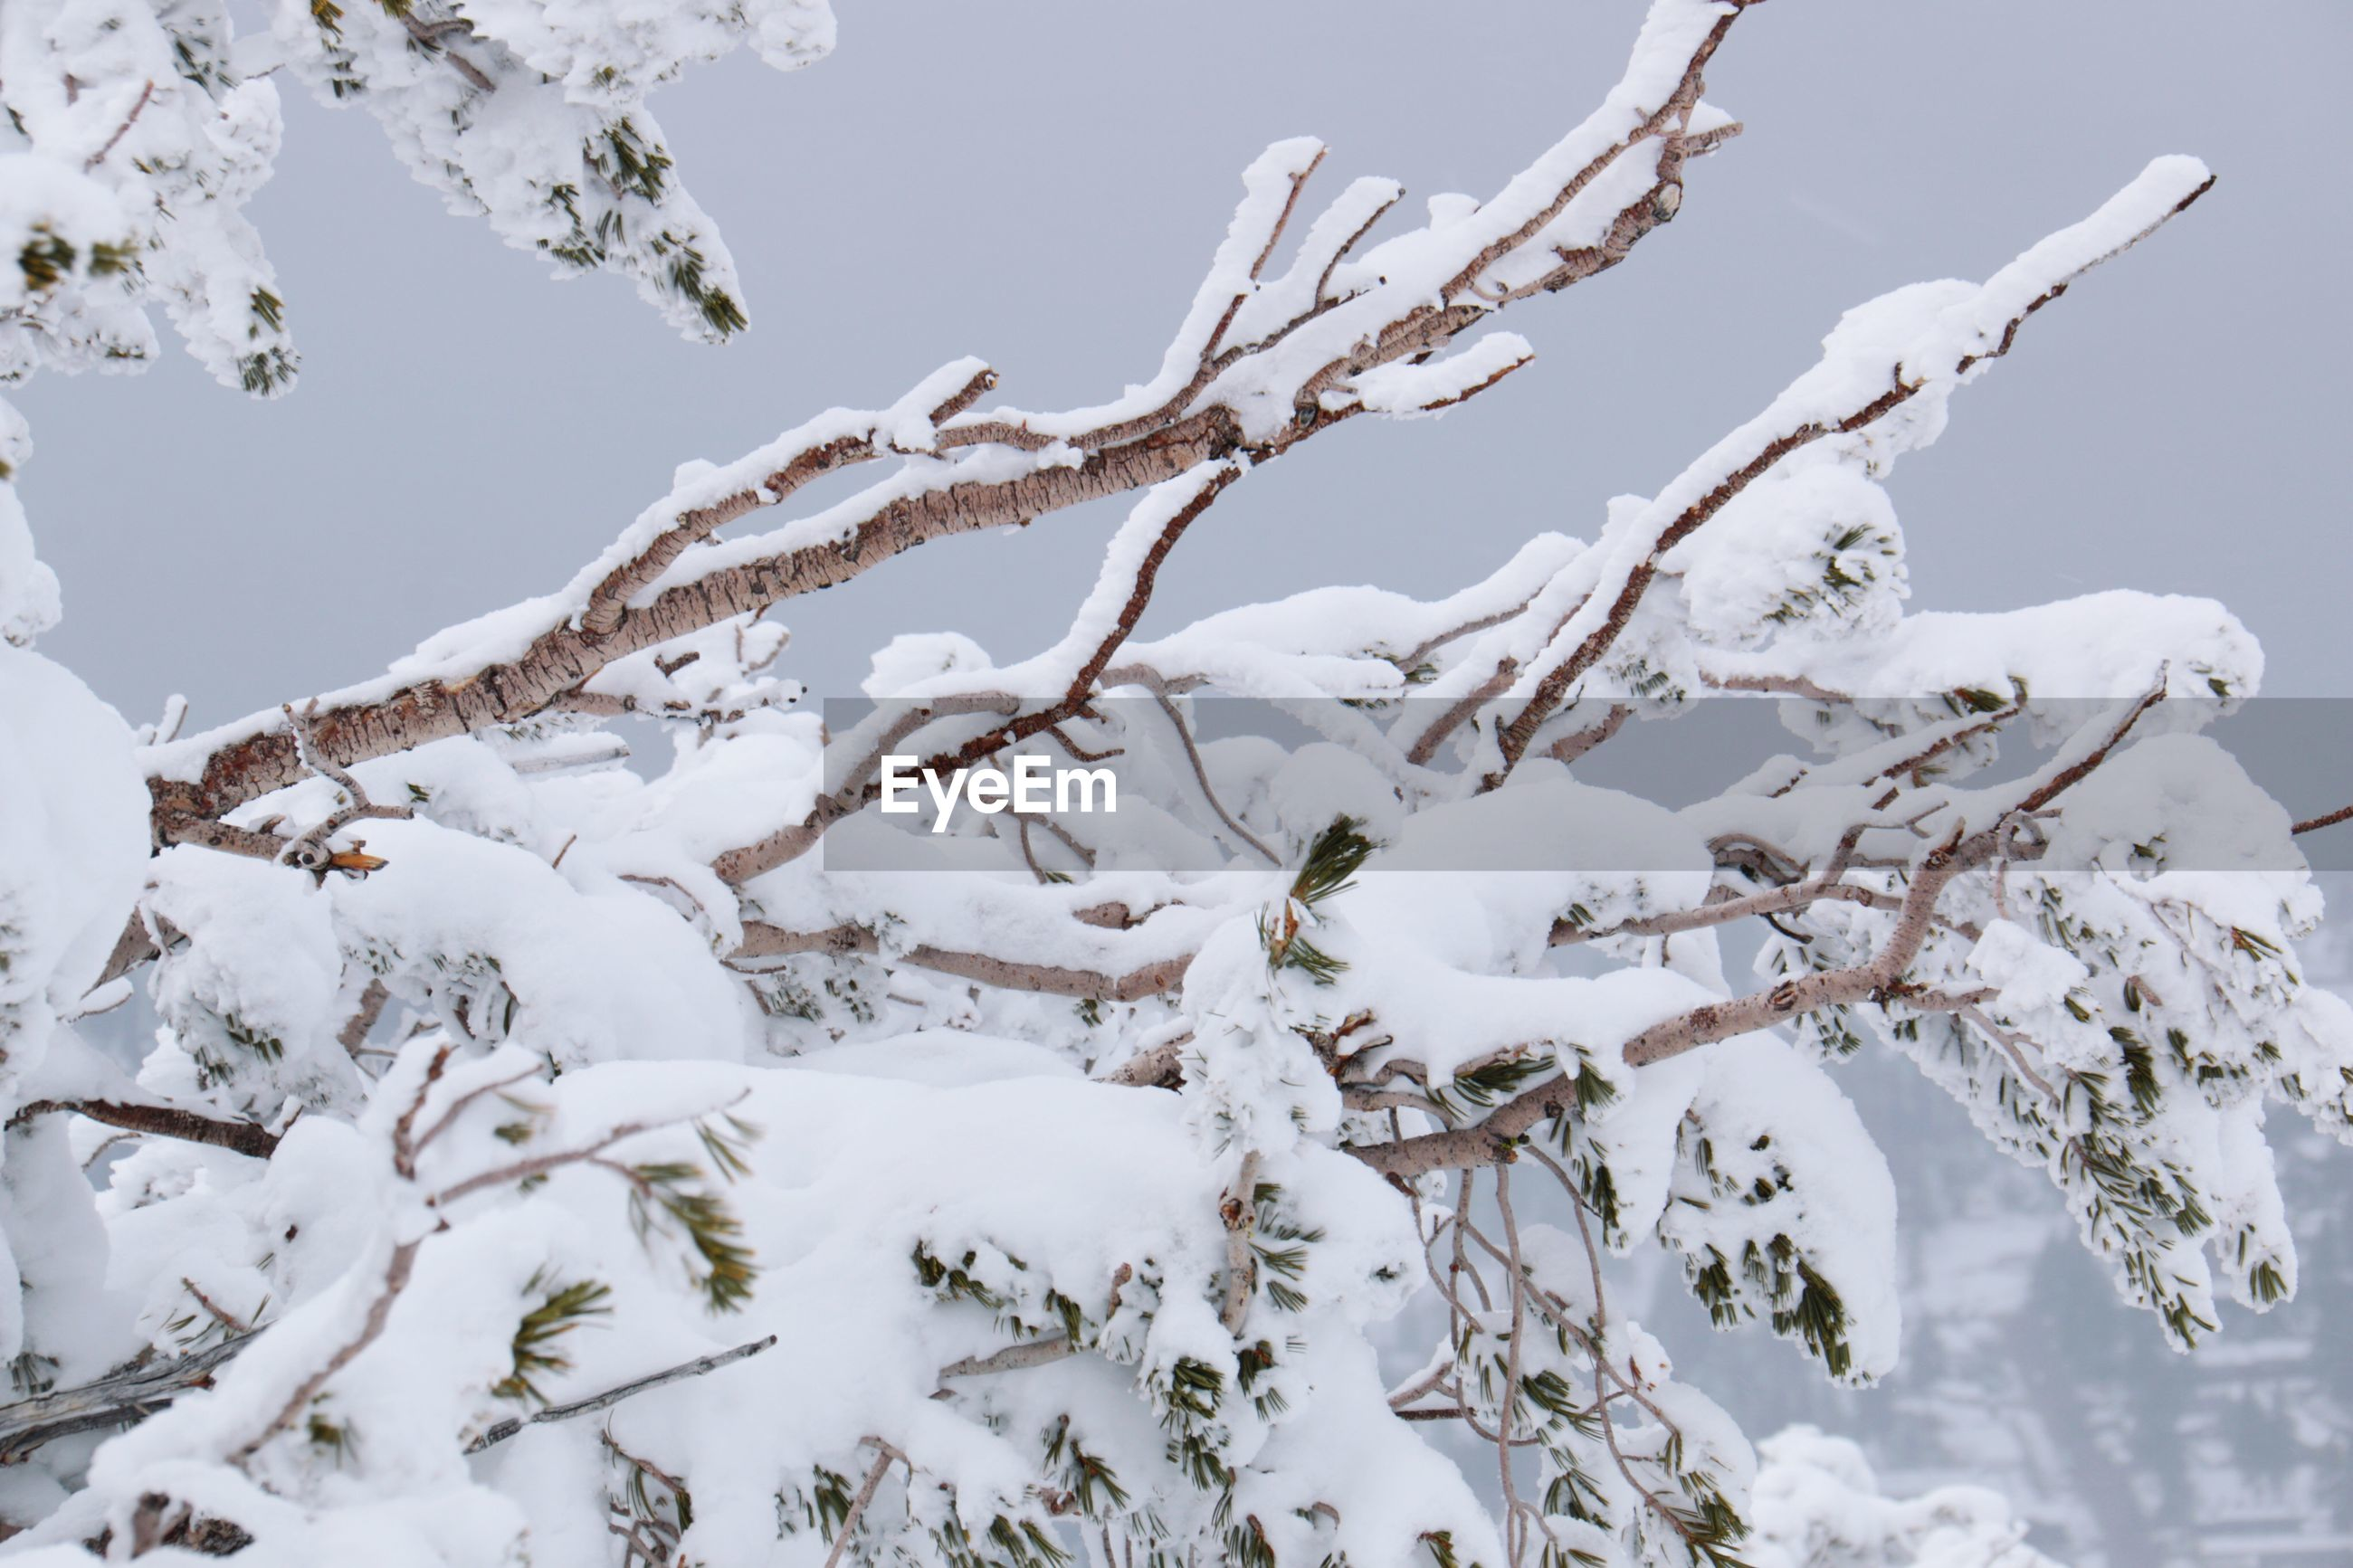 LOW ANGLE VIEW OF SNOW COVERED BRANCHES AGAINST SKY